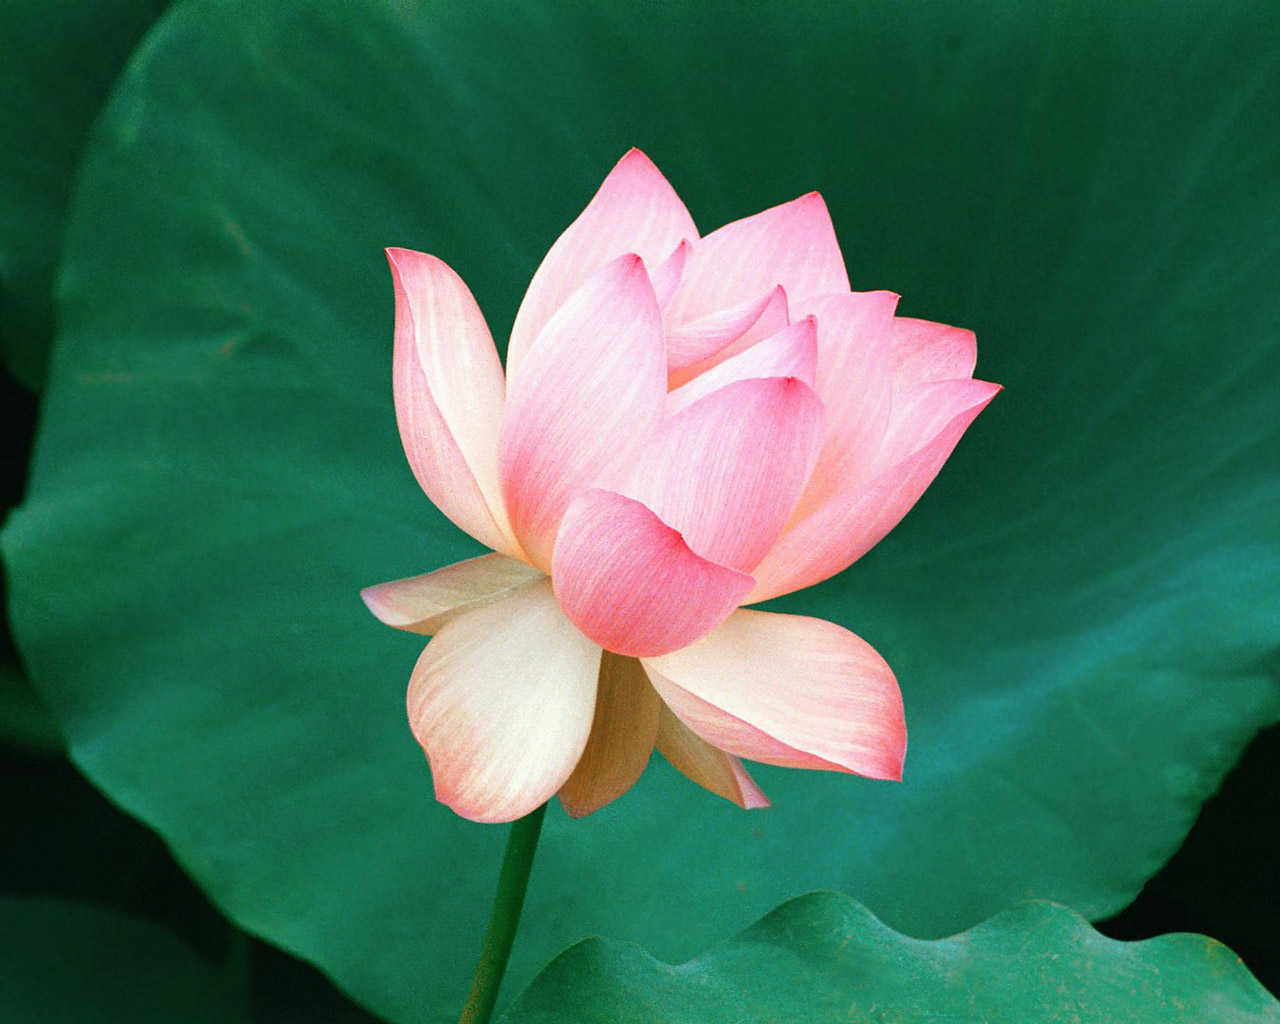 Image Gallary Lotus flower